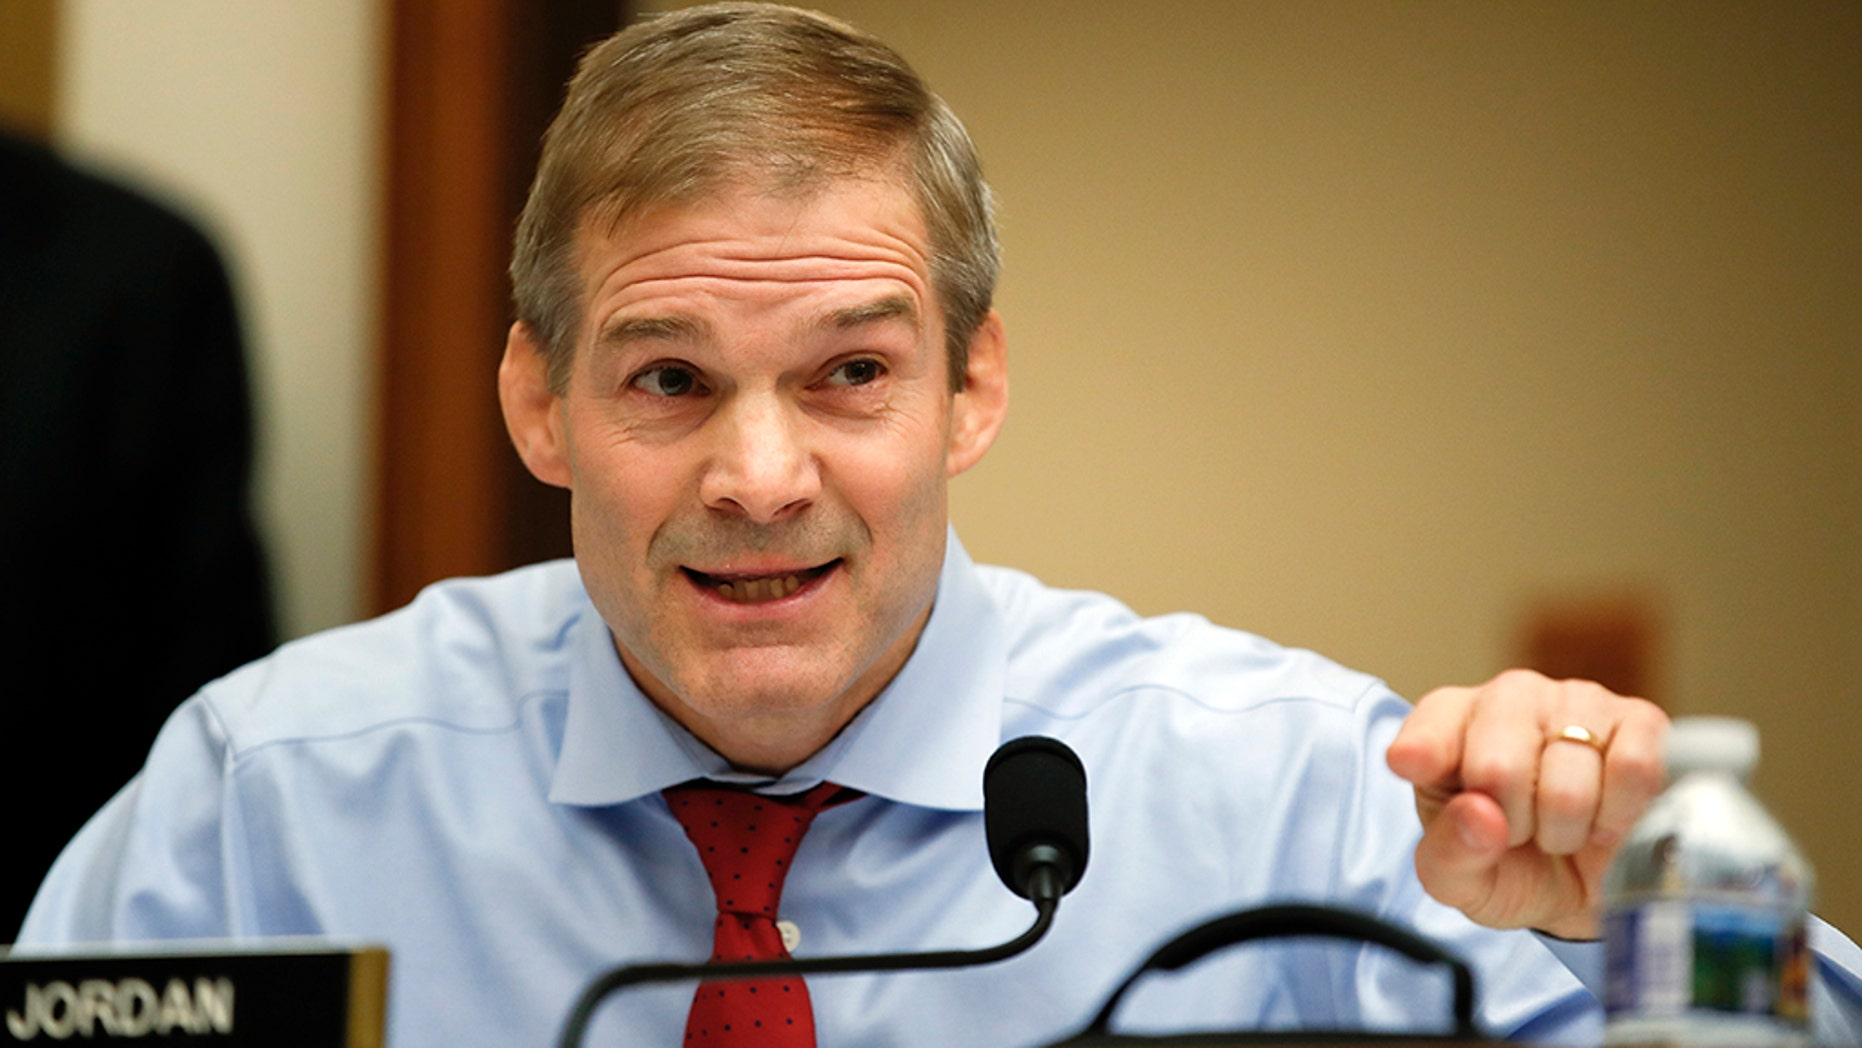 House Judiciary Committee member Rep. Jim Jordan, R-Ohio, at a hearing on Capitol Hill in Washington, Dec. 7, 2017. (Associated Press)